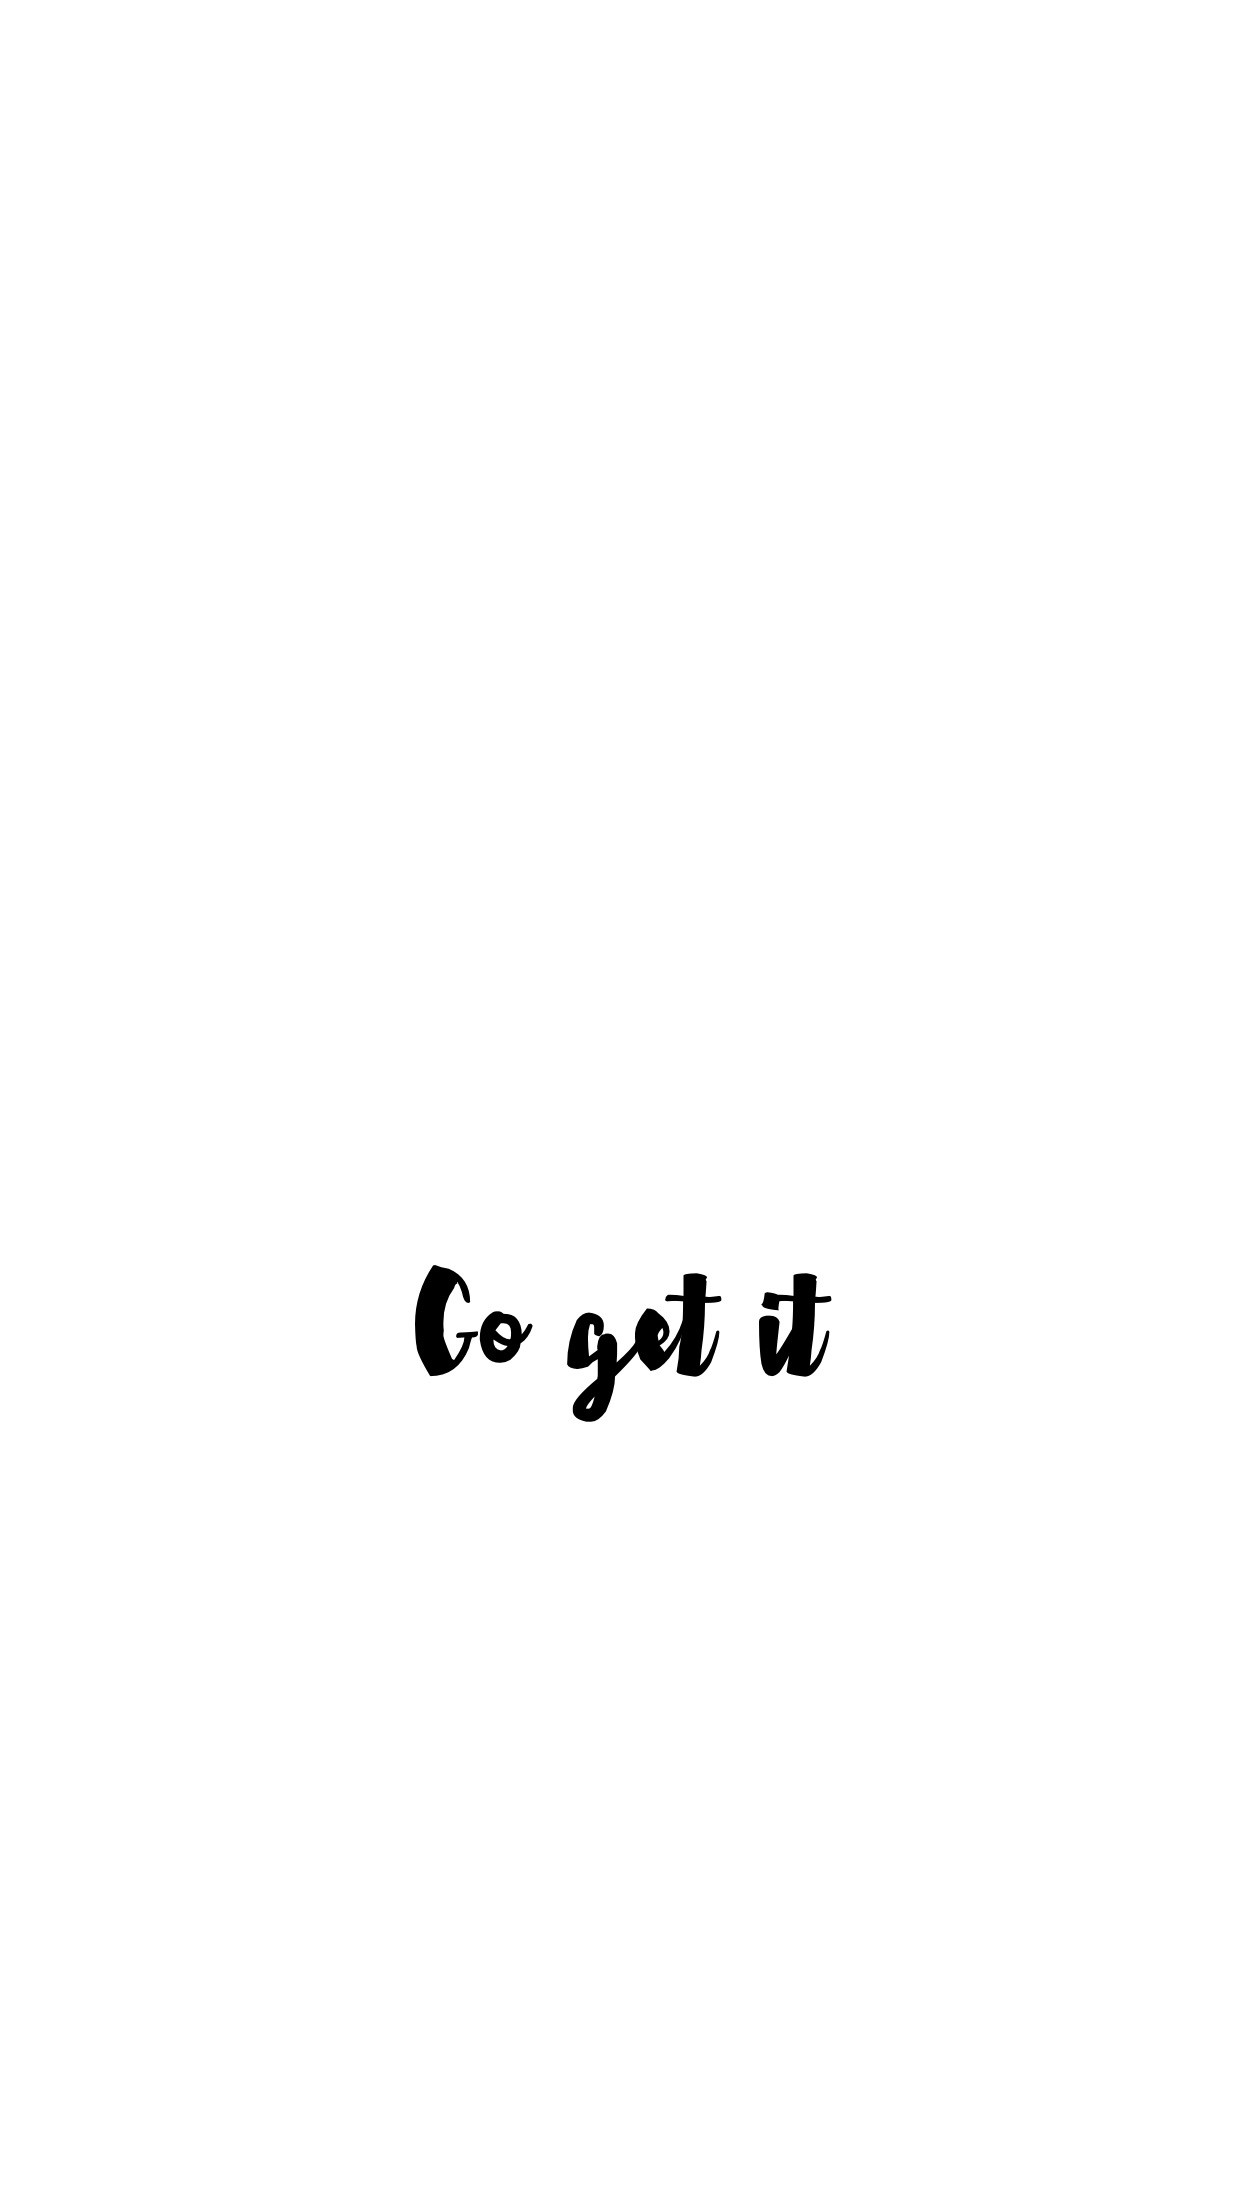 1241x2205 quote, inspiration, wallpaper, background, minimal, white, black, simple,